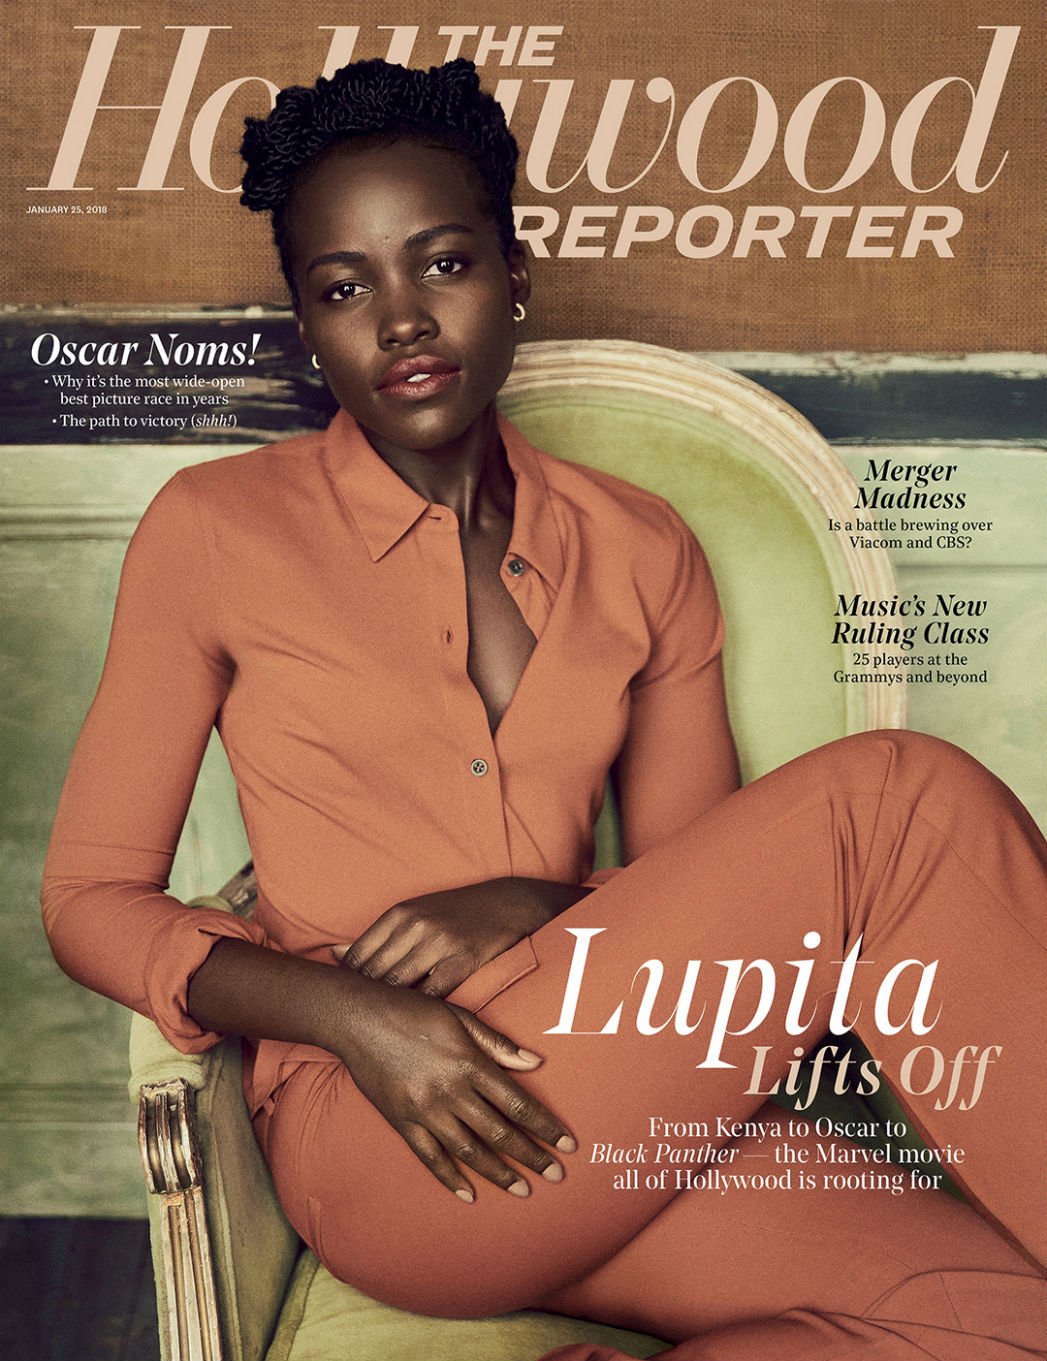 Lupita Nyong'o 'Couldn't Sleep' When Harvey Weinstein Allegations Came Out